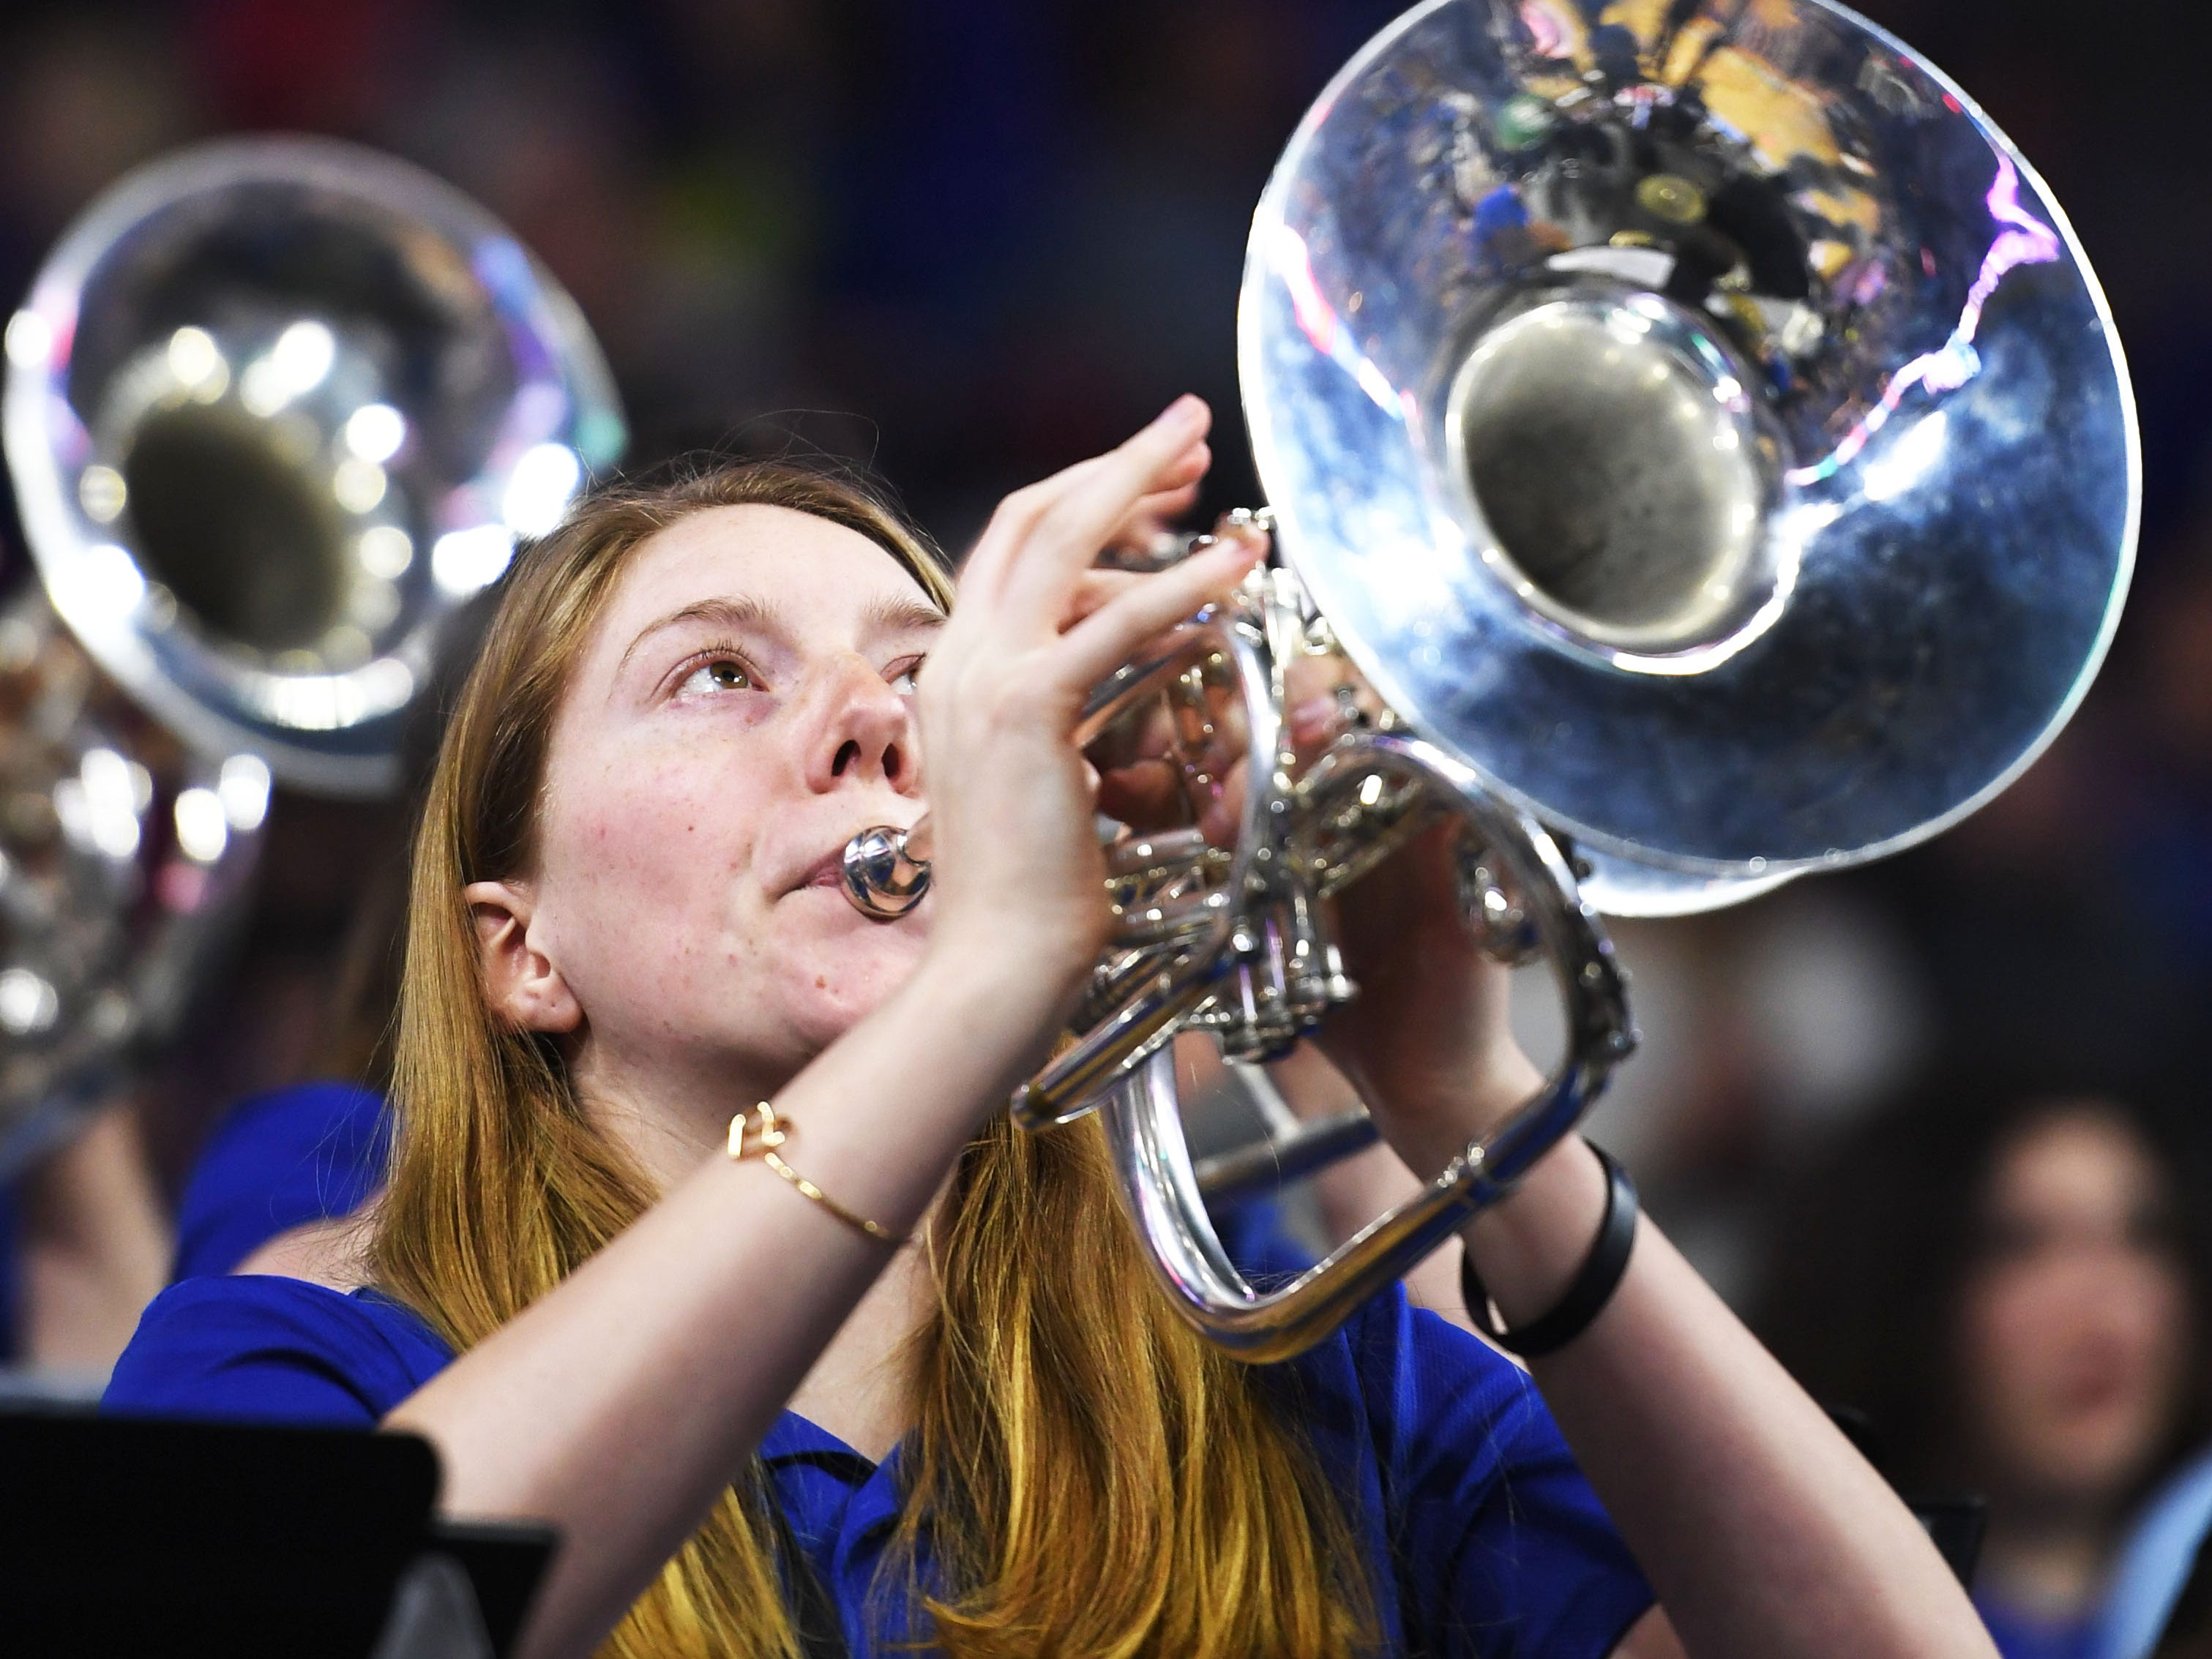 SDSU's band performs during the game against Western Illinois Saturday, March 9, in the Summit League tournament at the Denny Sanford Premier Center in Sioux Falls.